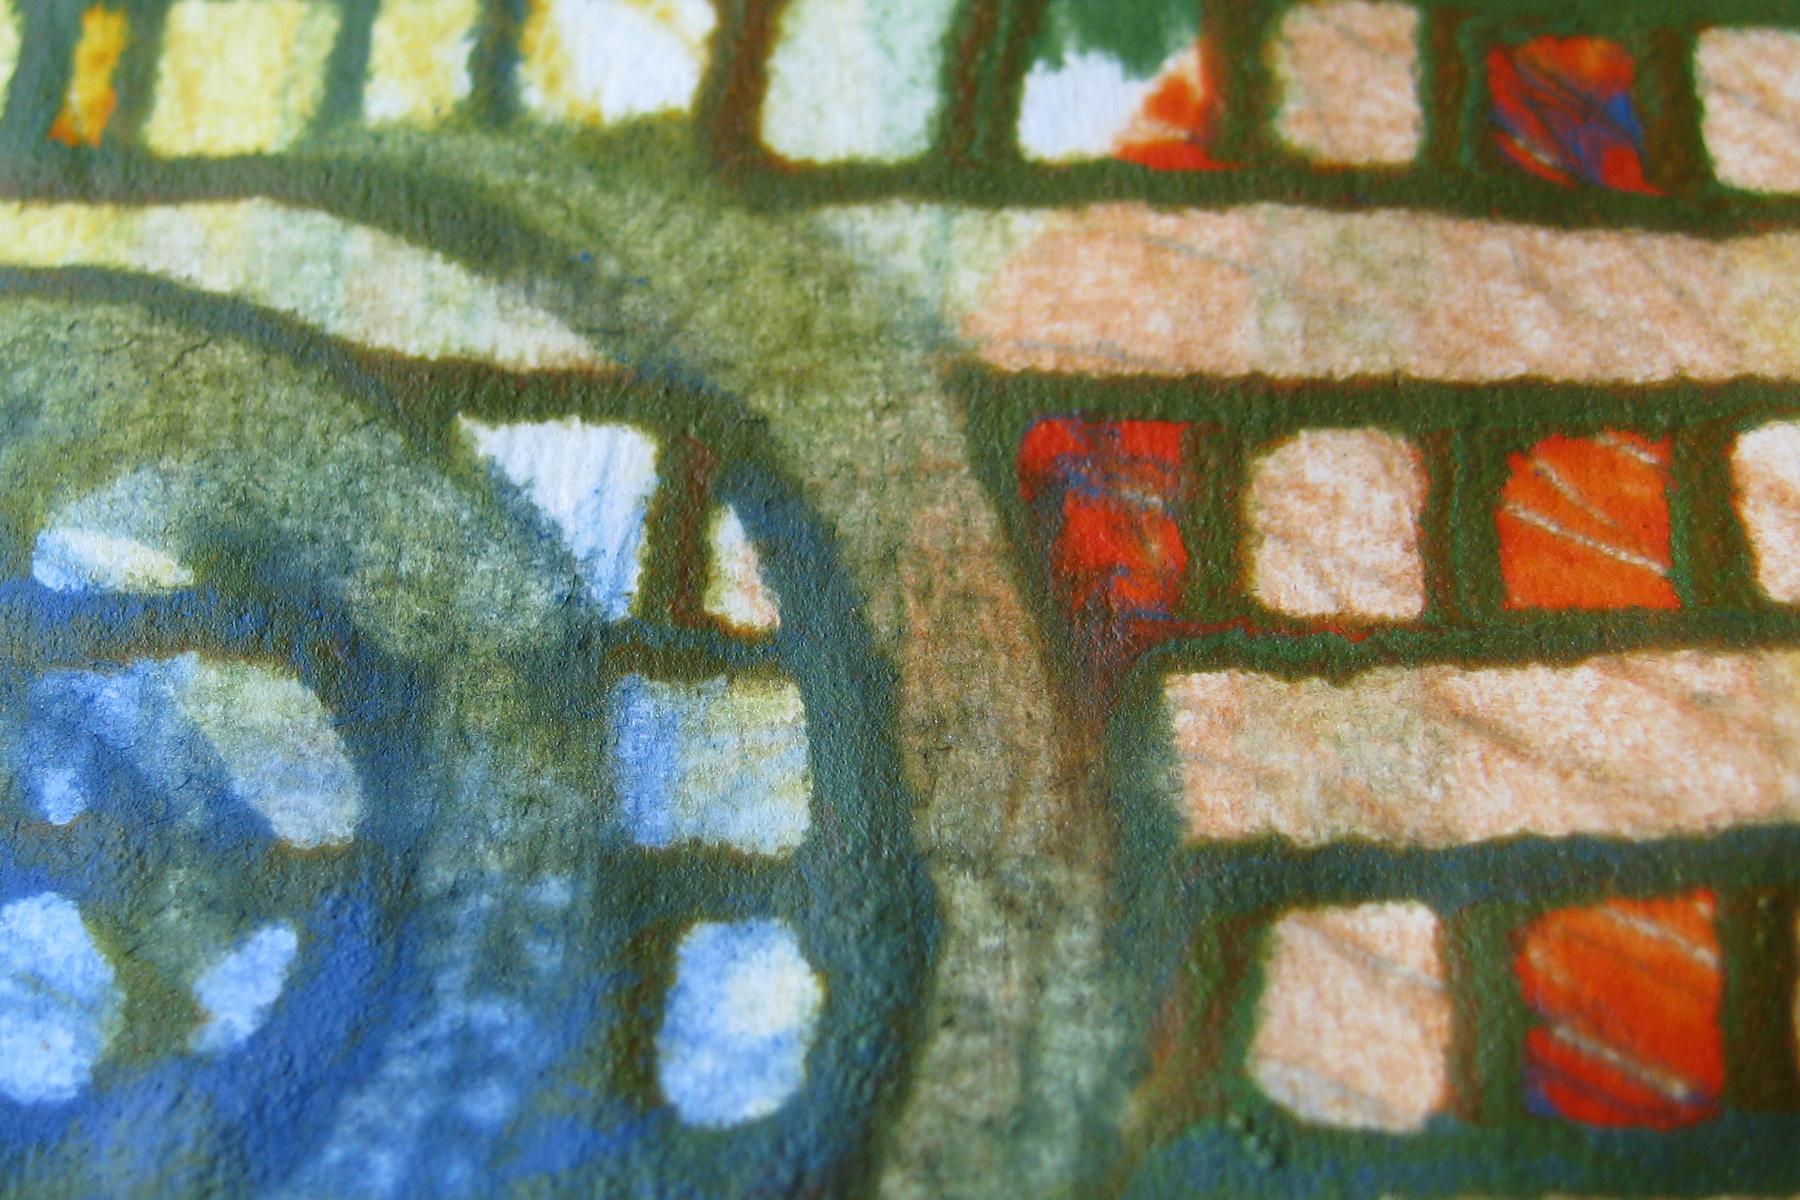 ⬆ This close up shows some of the shading and dimensional qualities that wheat paste gives the painted surface.